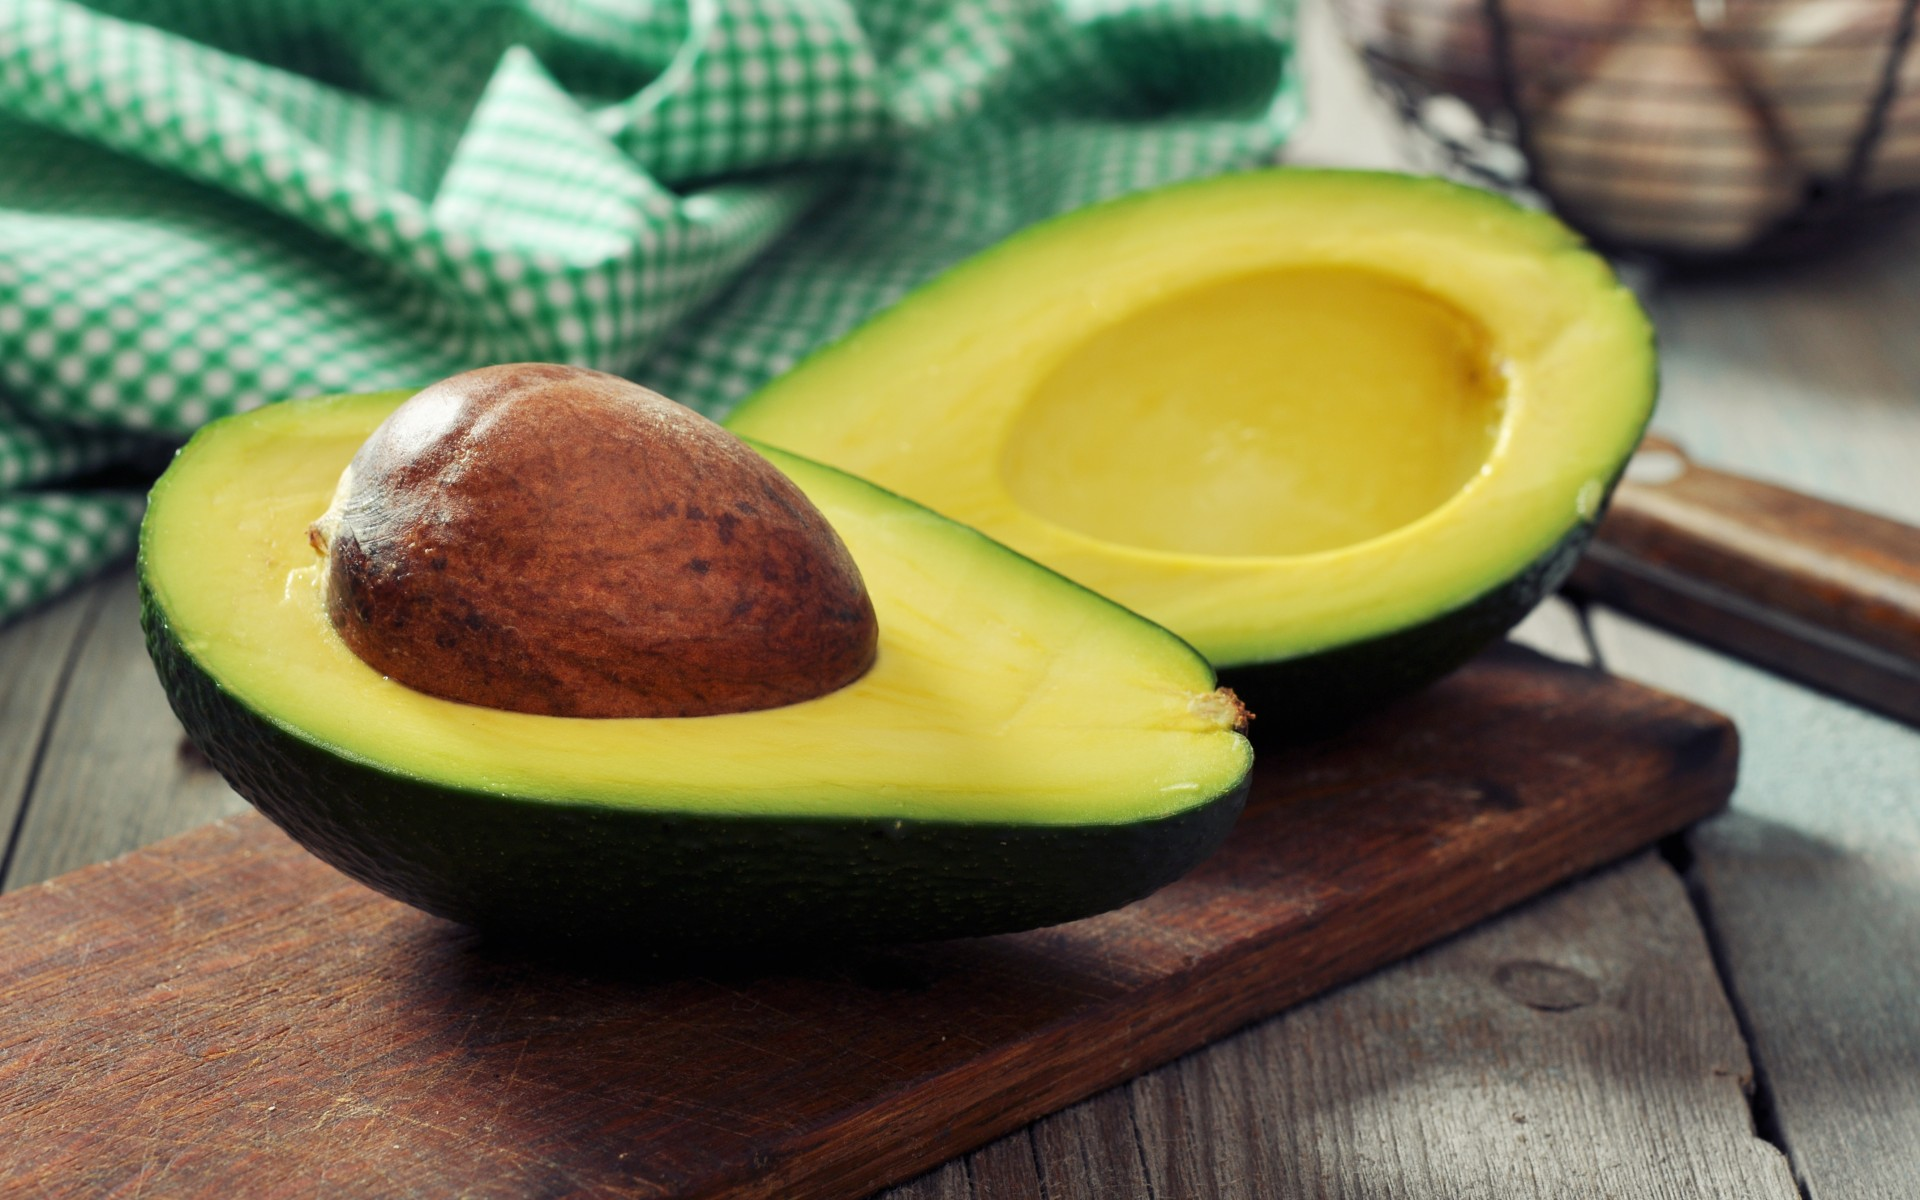 avocado cut in half, core, tablecloth,knife